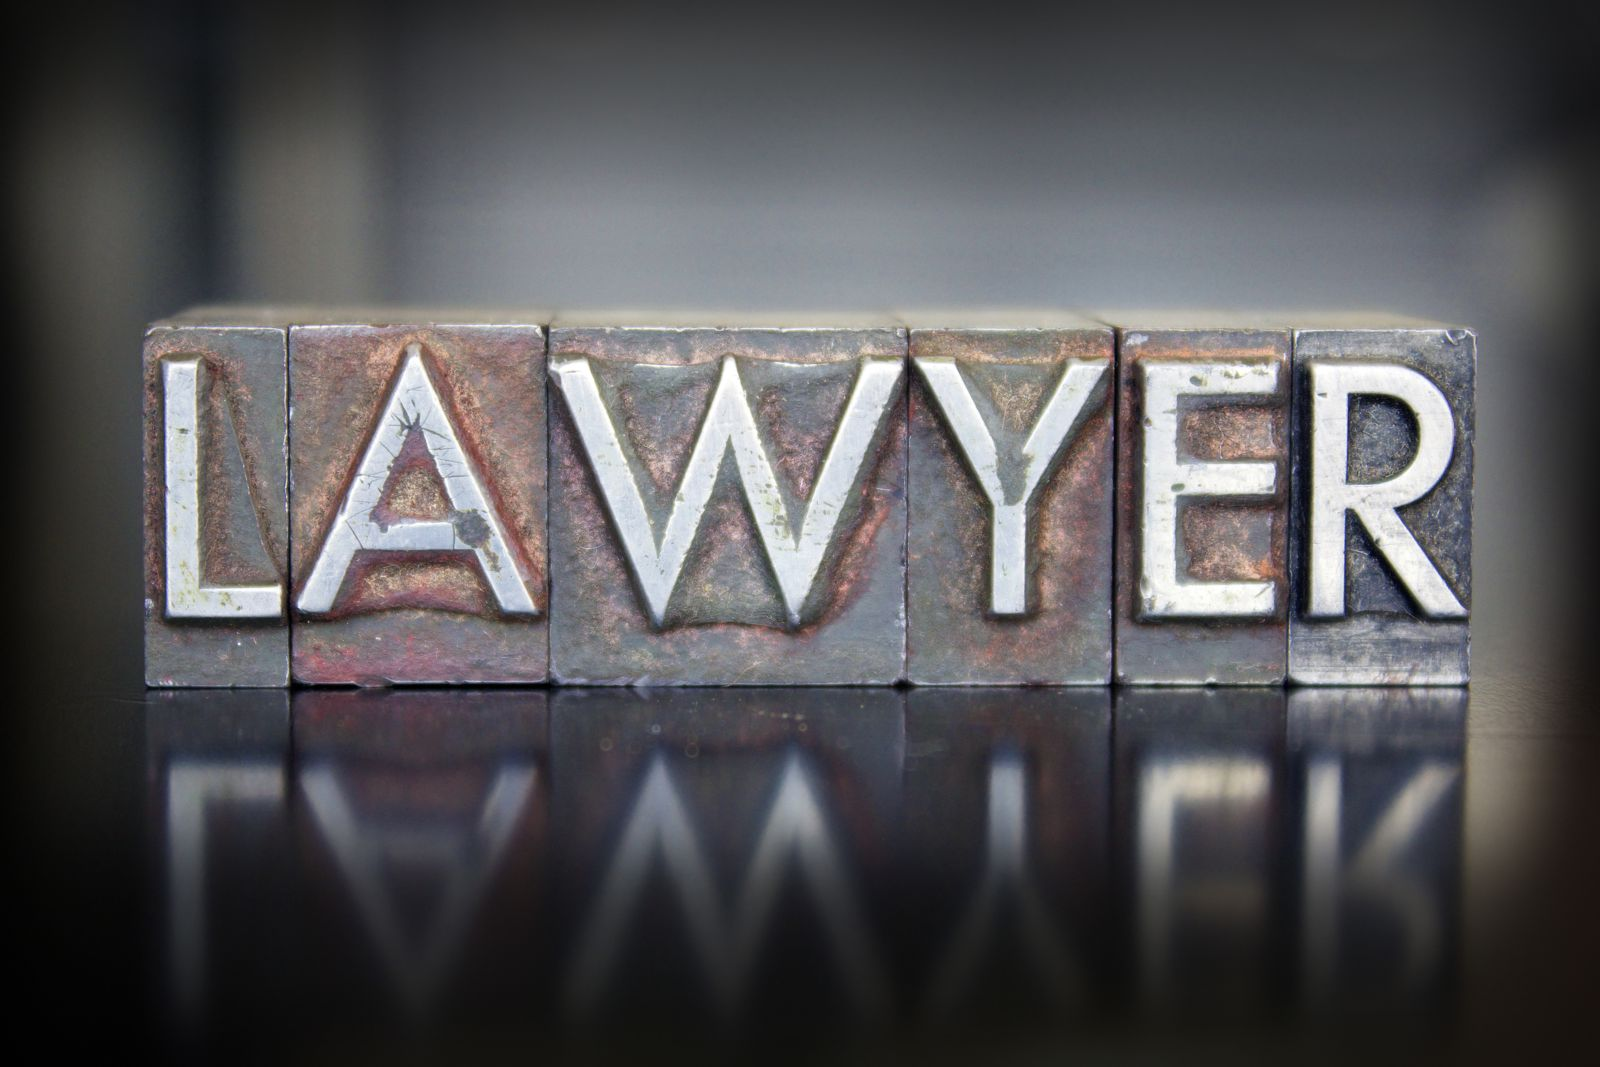 Lawyer sign